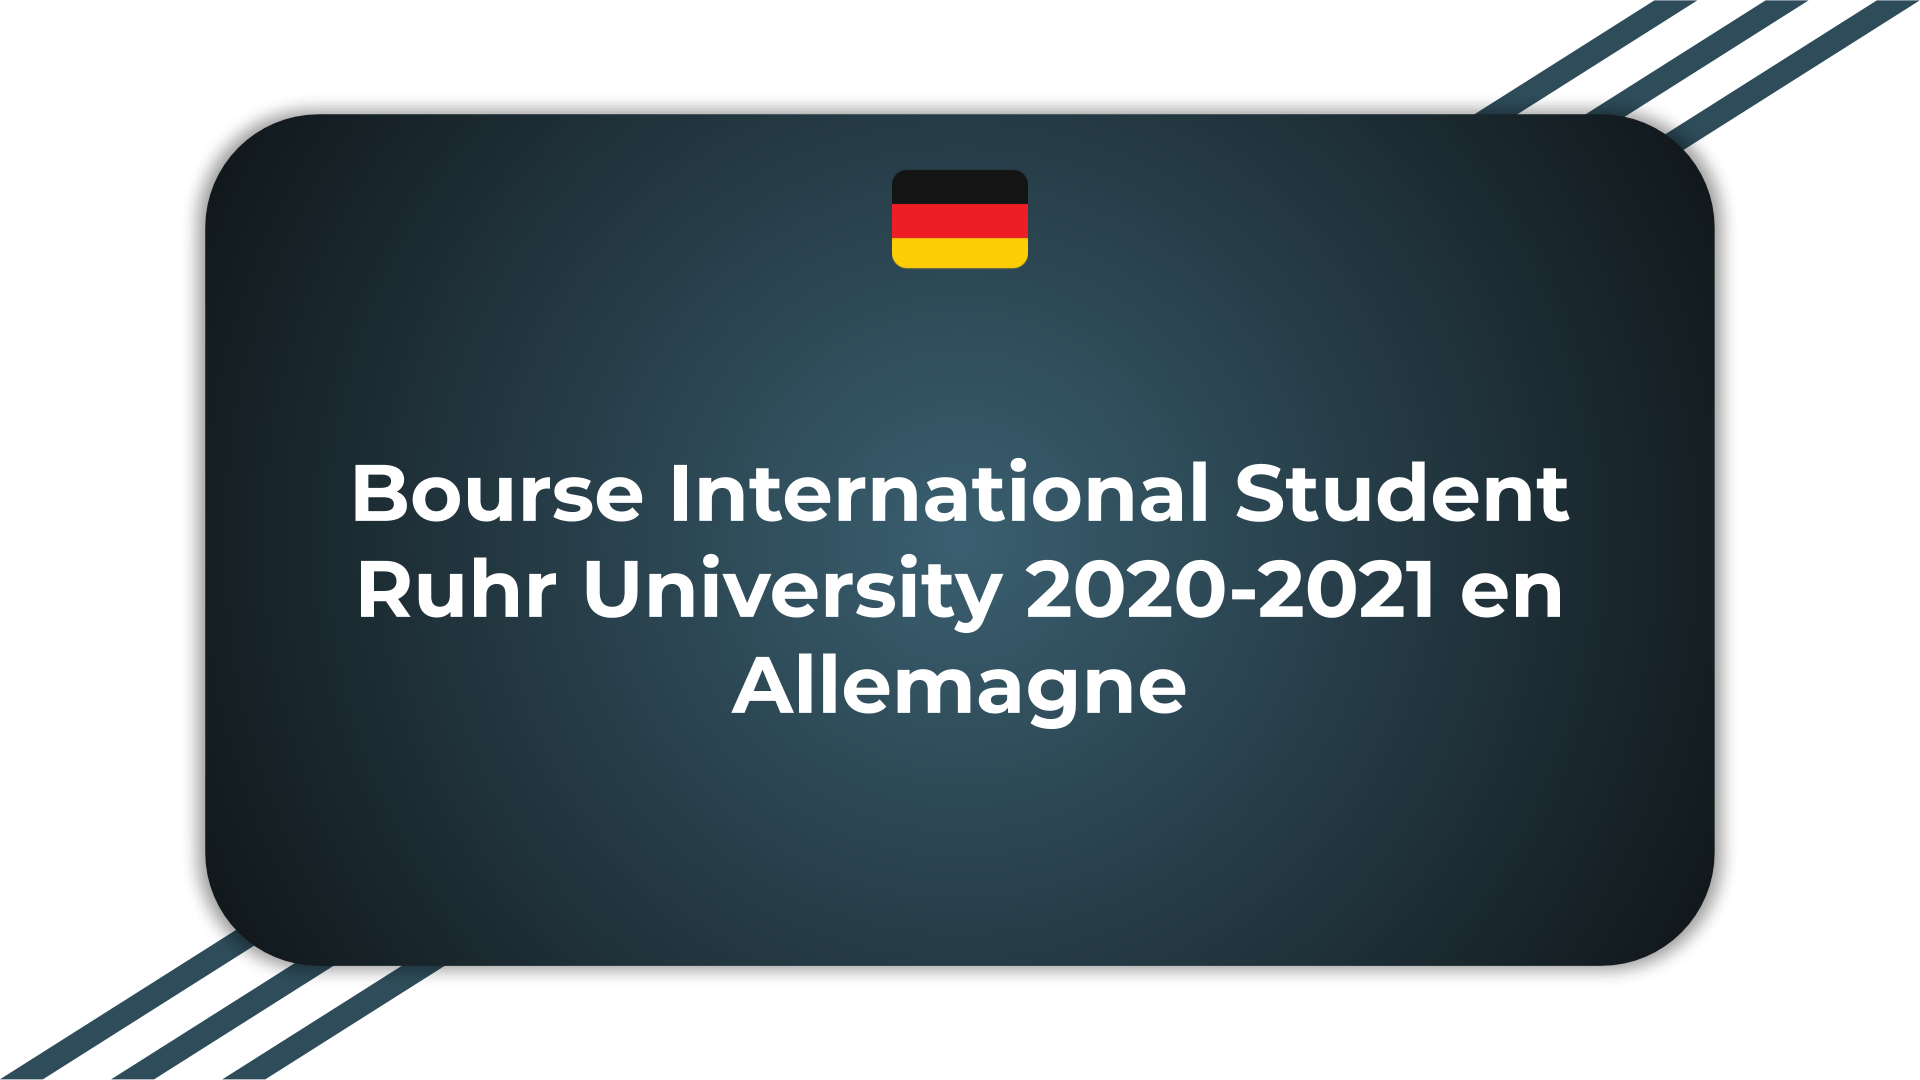 Bourse International Student Ruhr University